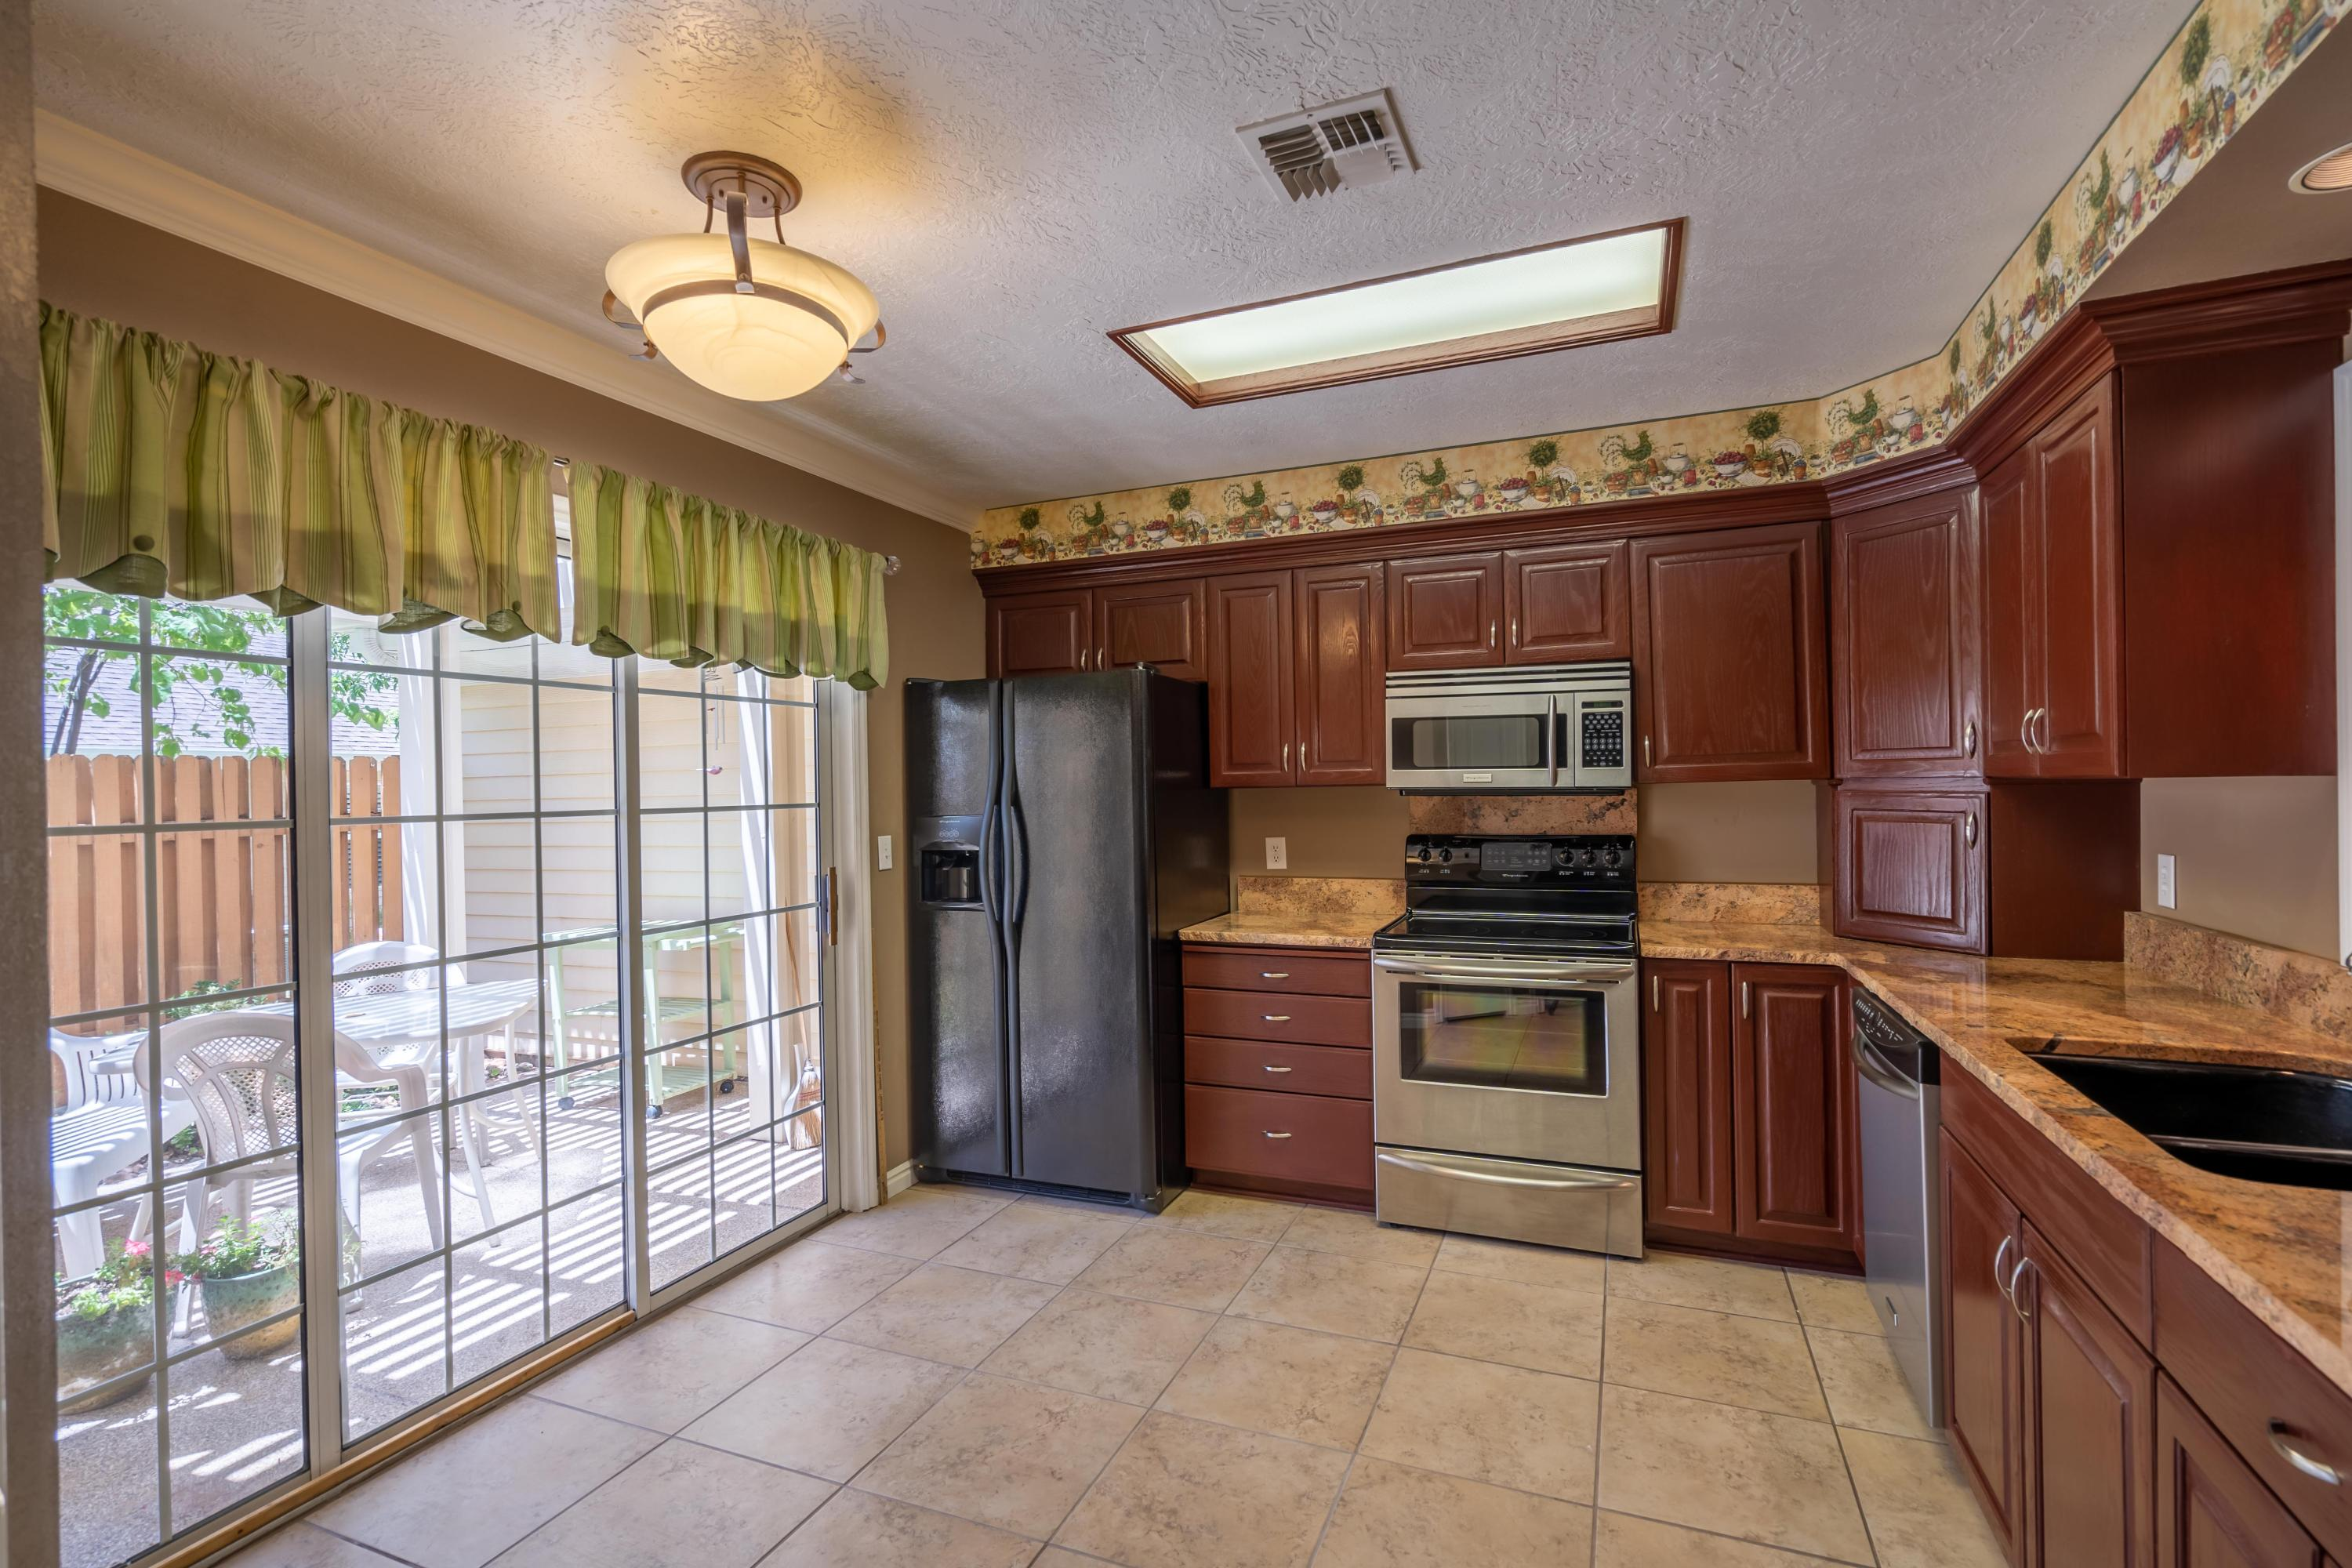 Beautiful 1 level town home located close to everything!  This town home is super clean and full of upgrades.  Private back yard patio and a full two car garage.  This town home has been upgraded with tile floors, granite counter tops, and newer appliances.  Located within walking distance to the community swimming pool.